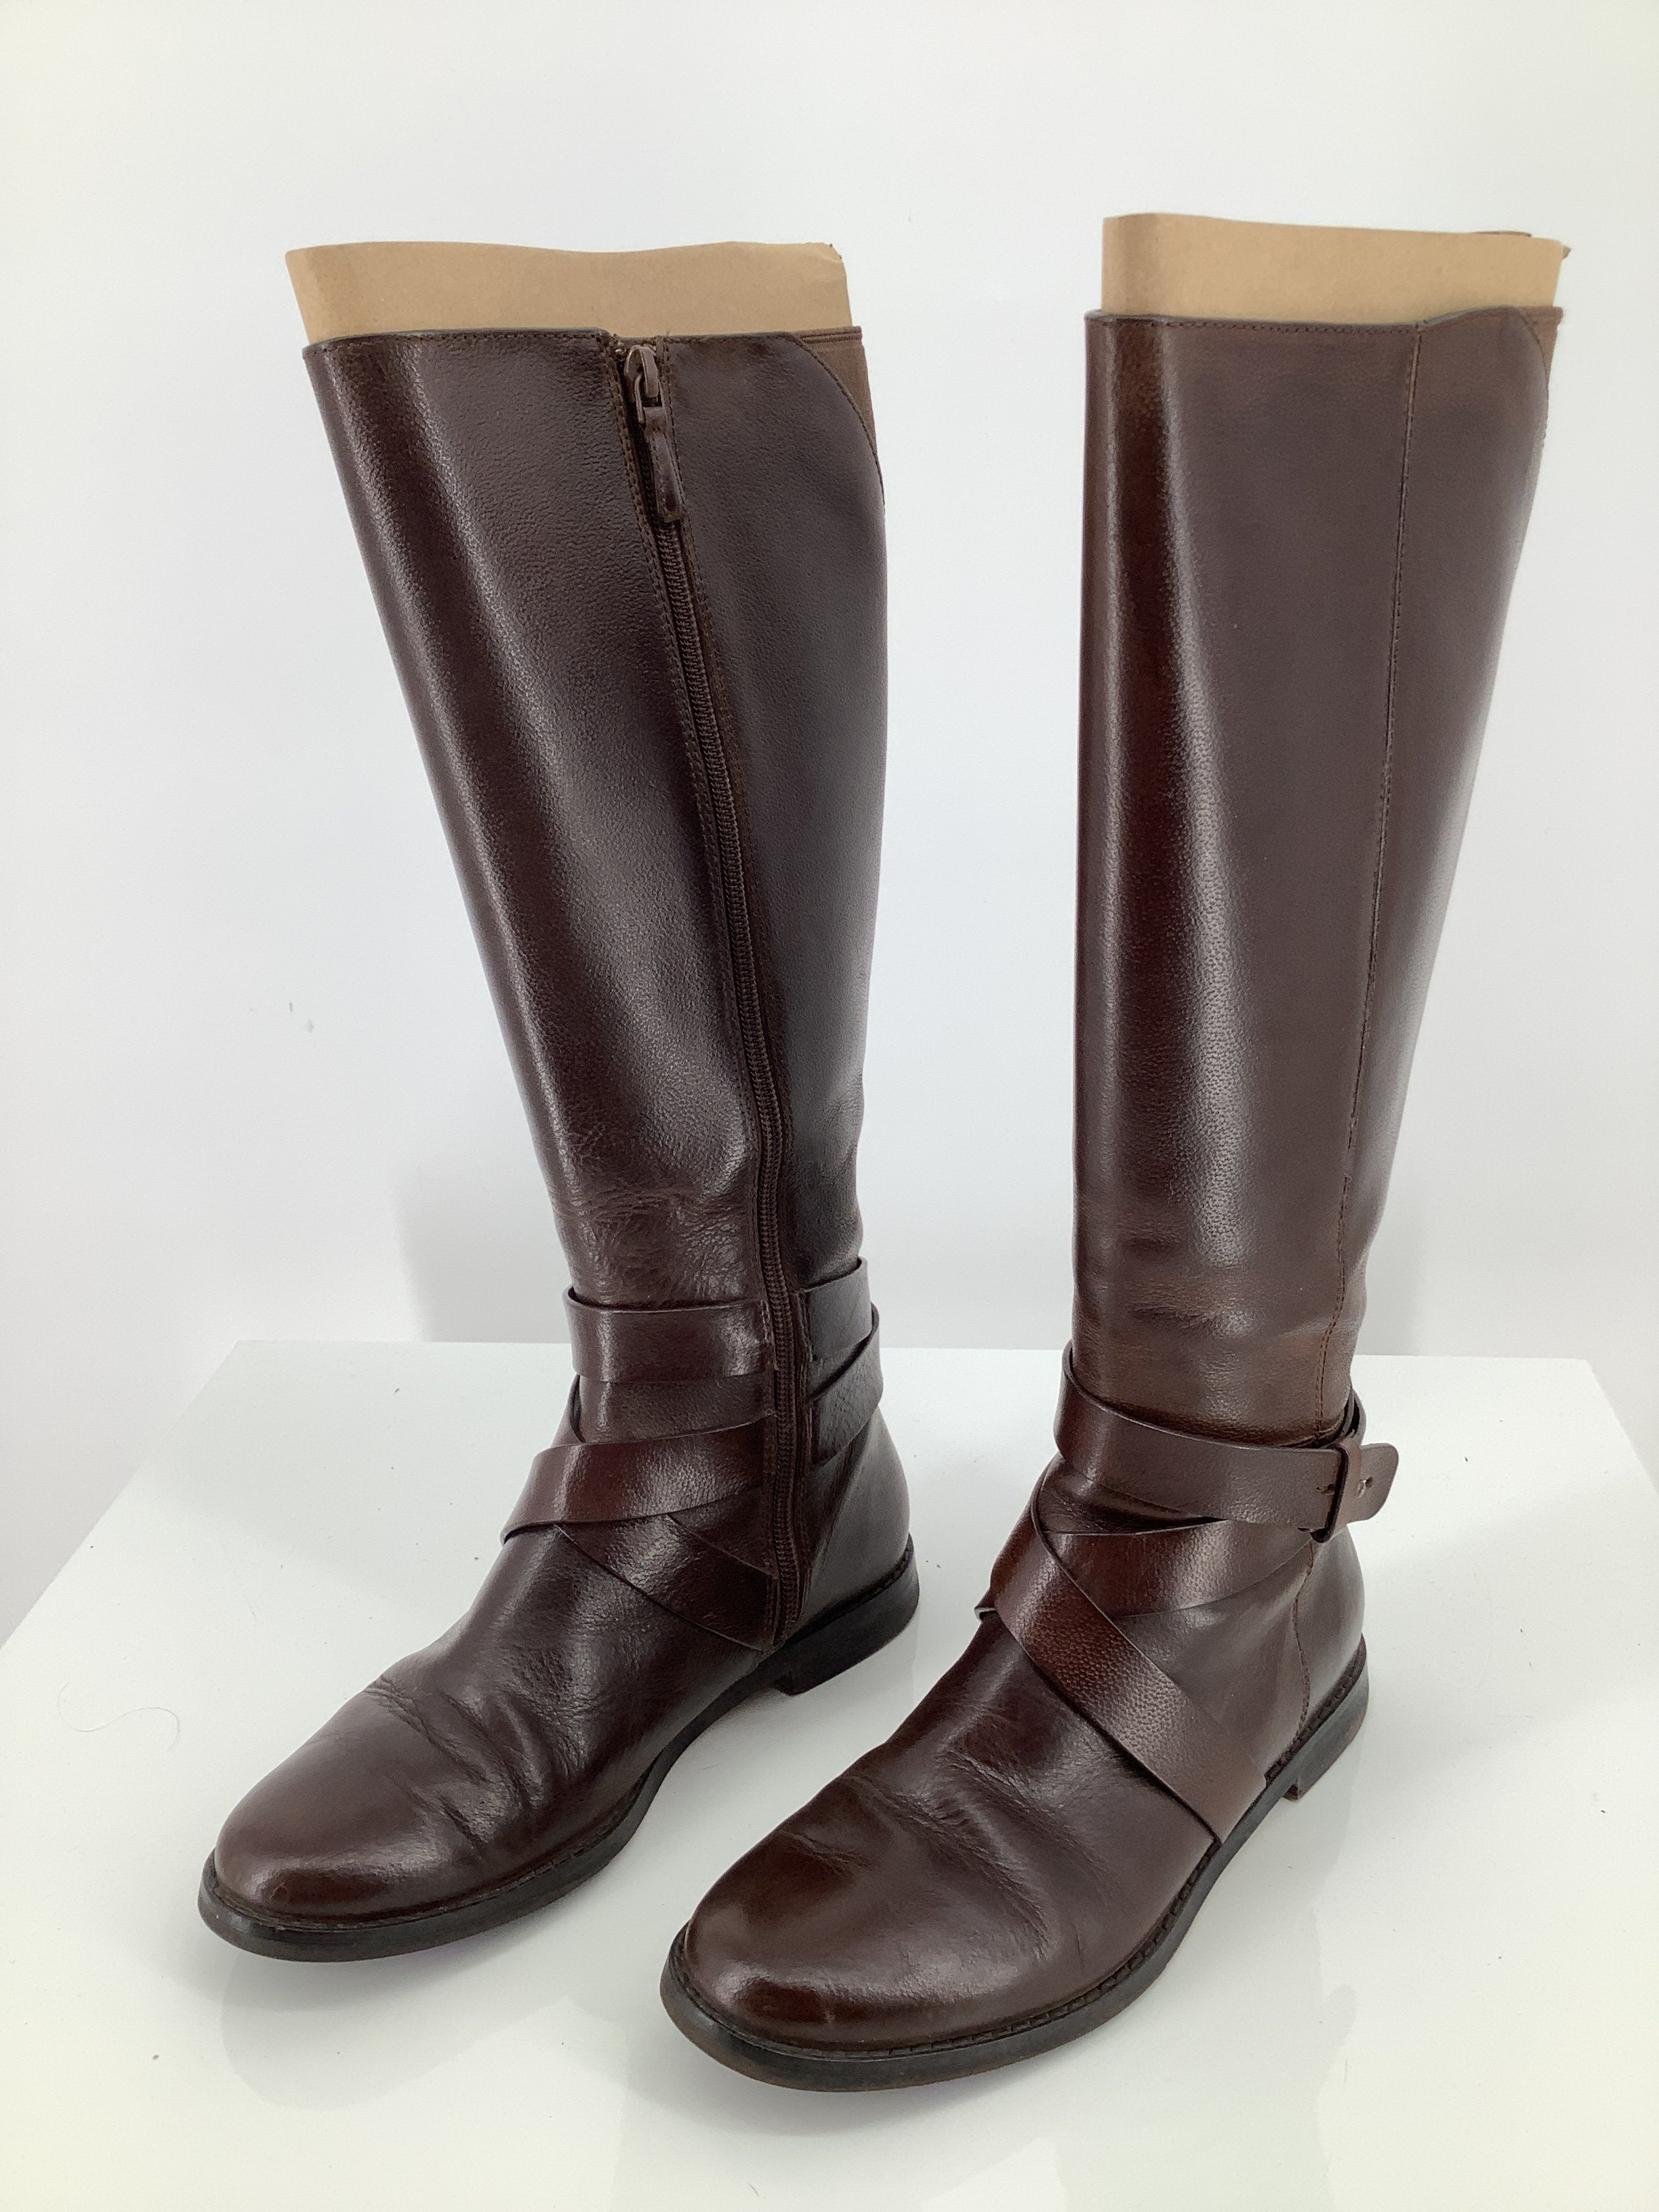 Primary Photo - brand: cole-haan , style: boots knee , color: brown , size: 6 , sku: 105-3221-16793